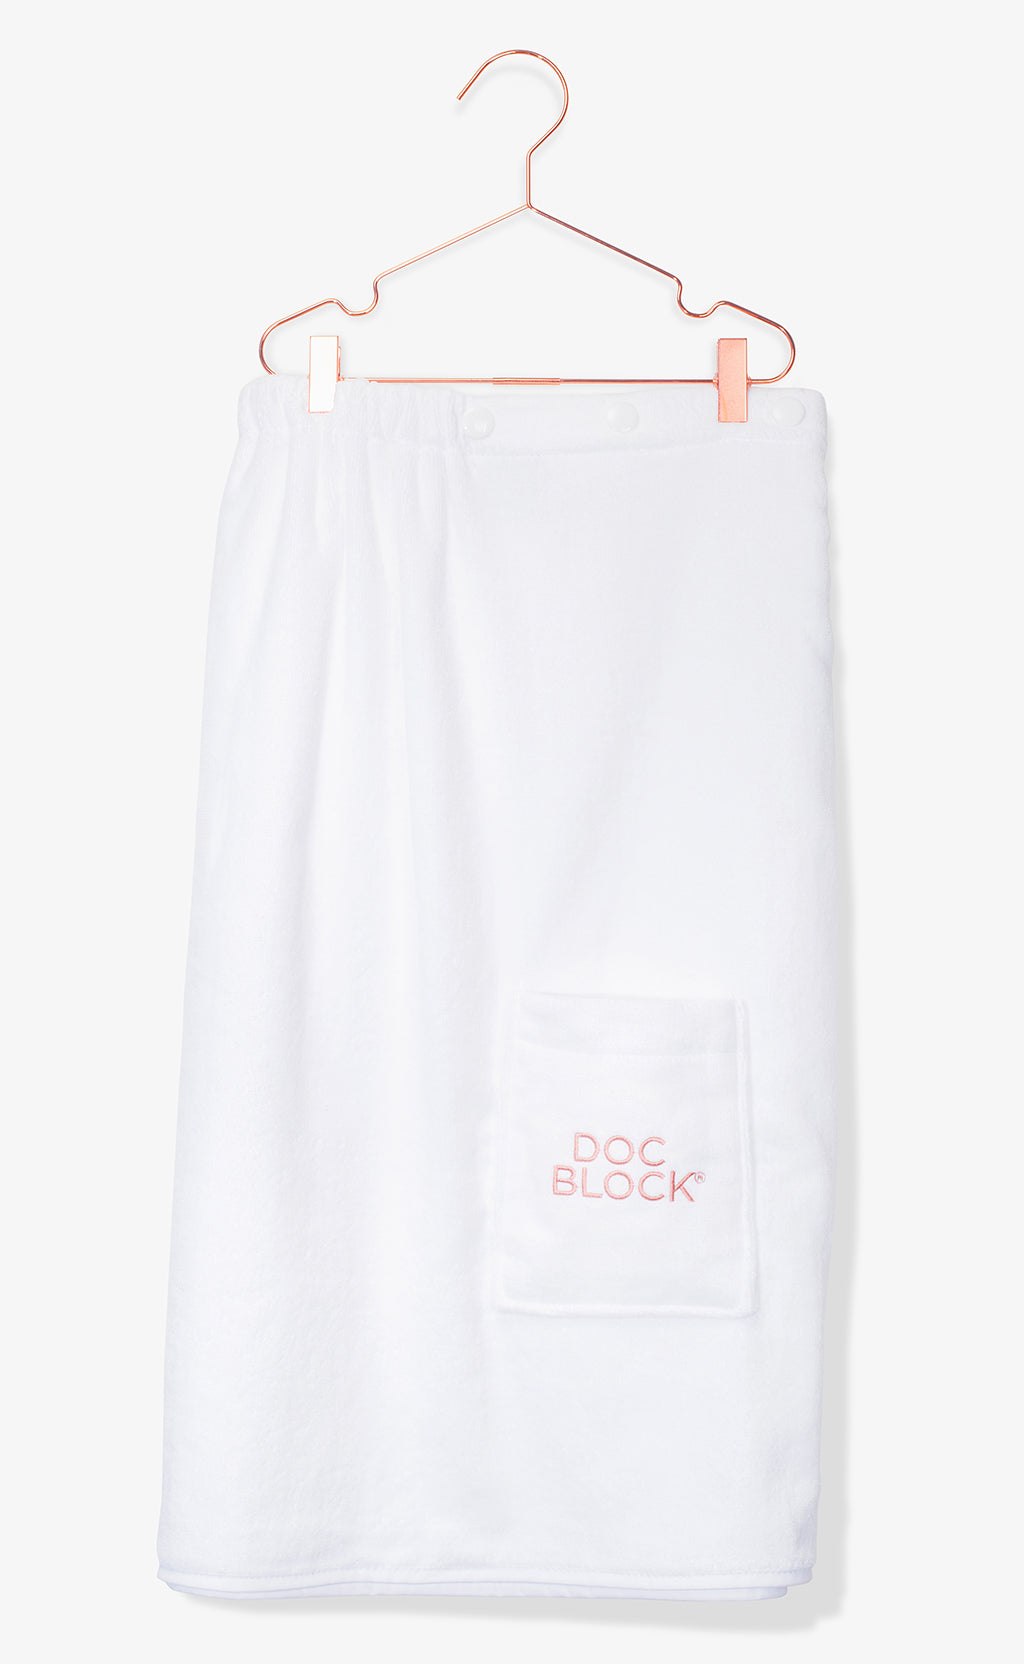 DOC BLOCK EMBROIDERED TOWEL WRAP IN 100% WHITE COTTON